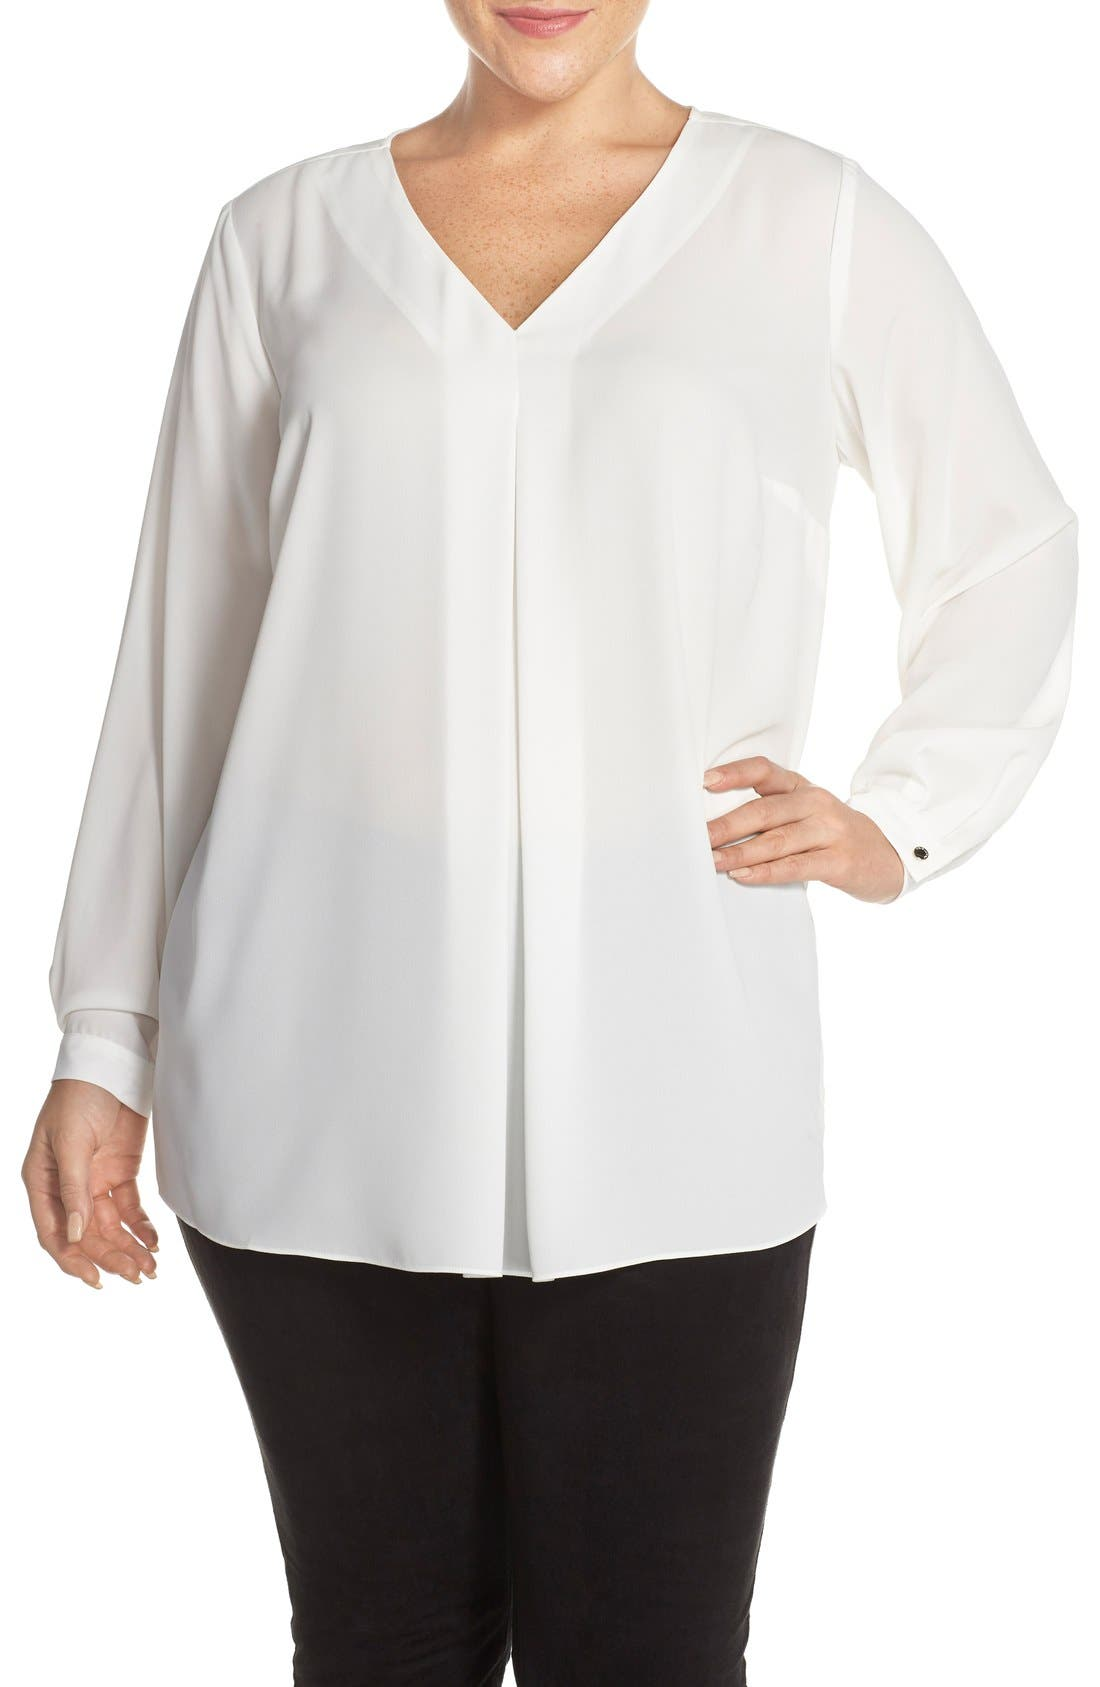 Main Image - Vince Camuto Pleat Front V-Neck Blouse (Plus Size)